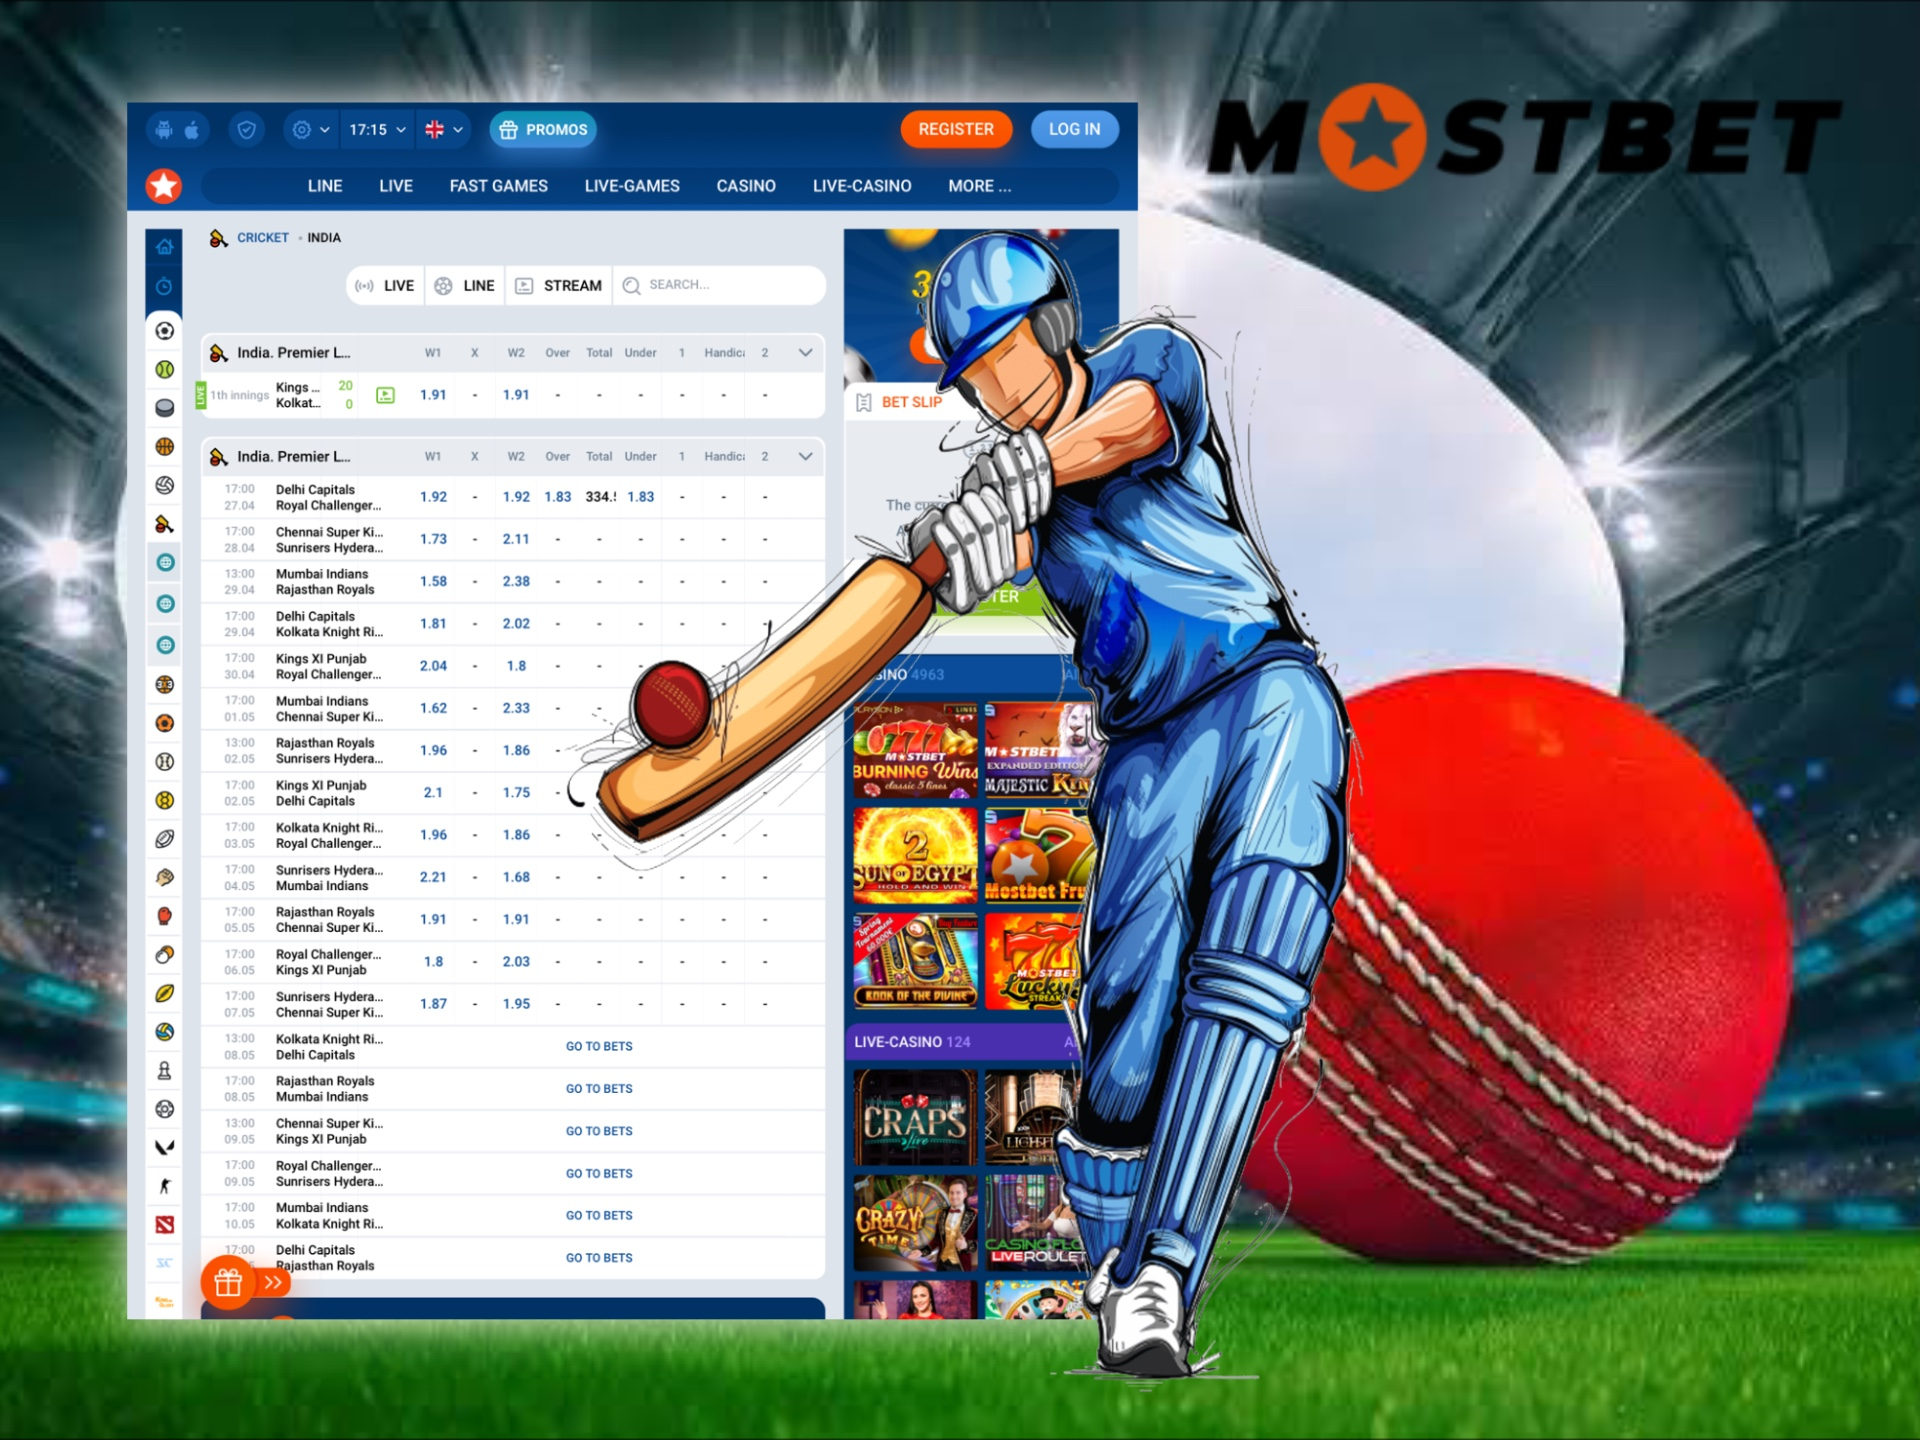 You can find profitable odds on cricket betting at Mostbet.